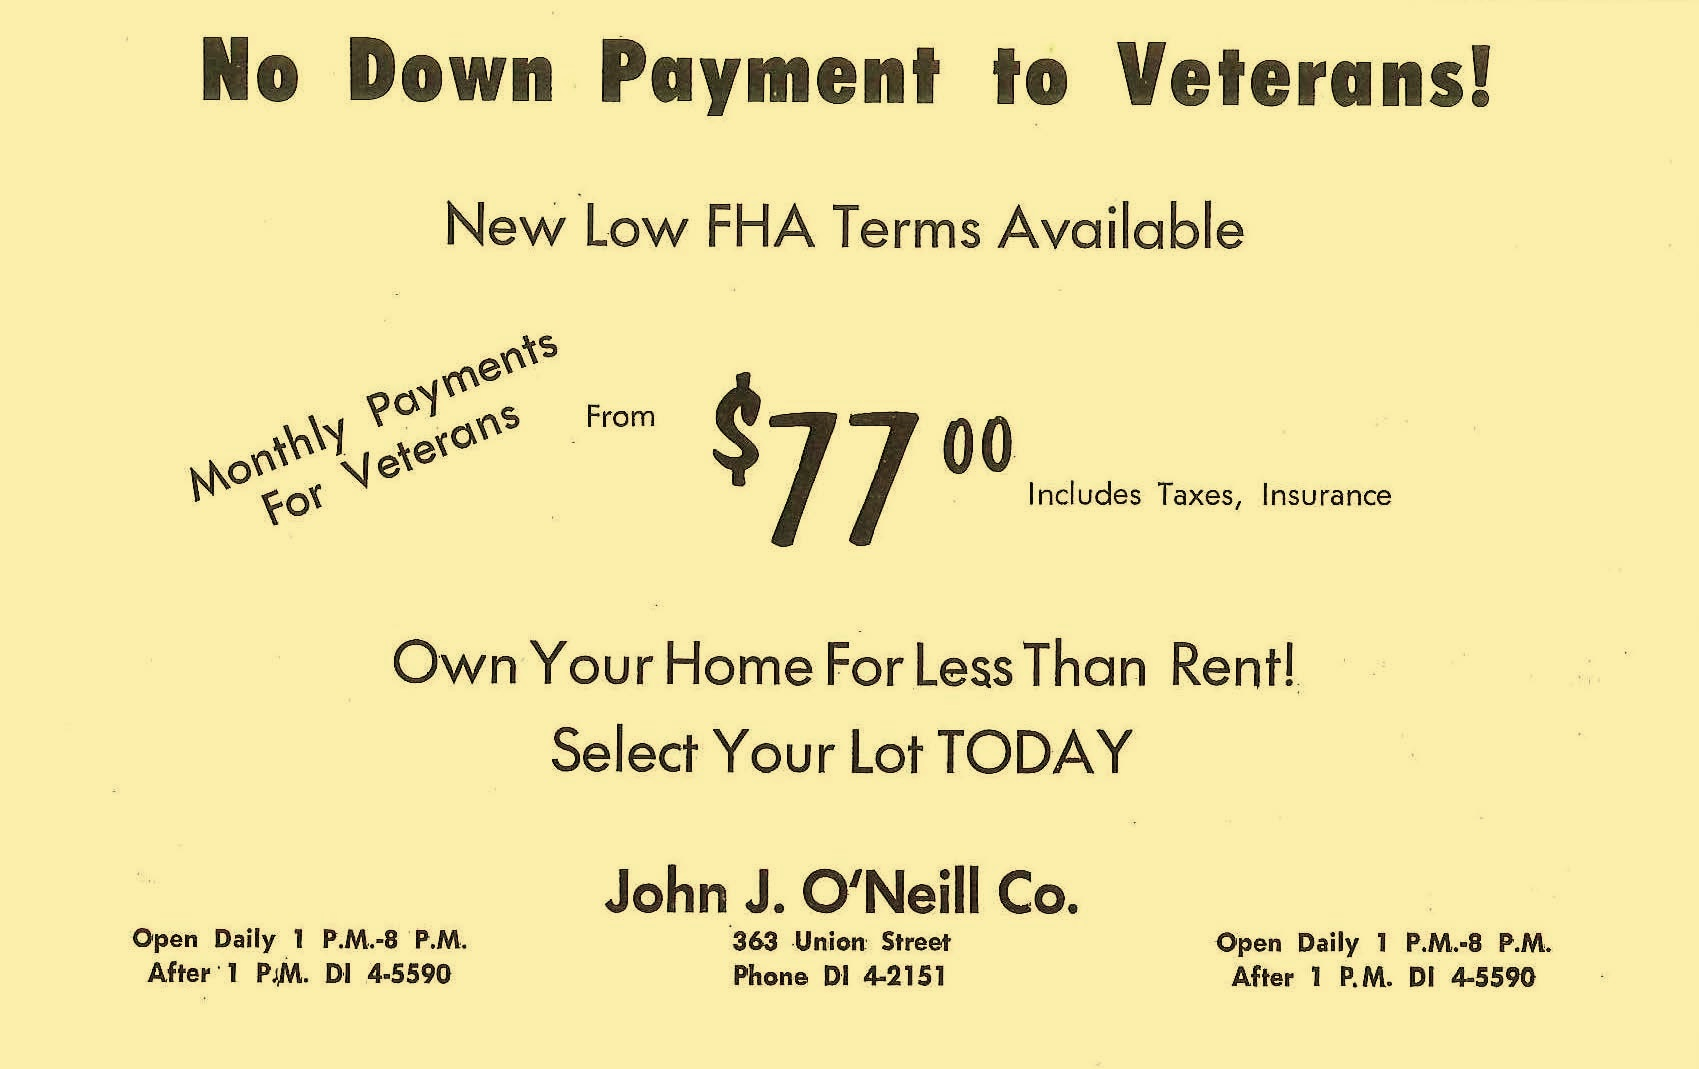 No+Down+Payment+to+Veterans.jpg